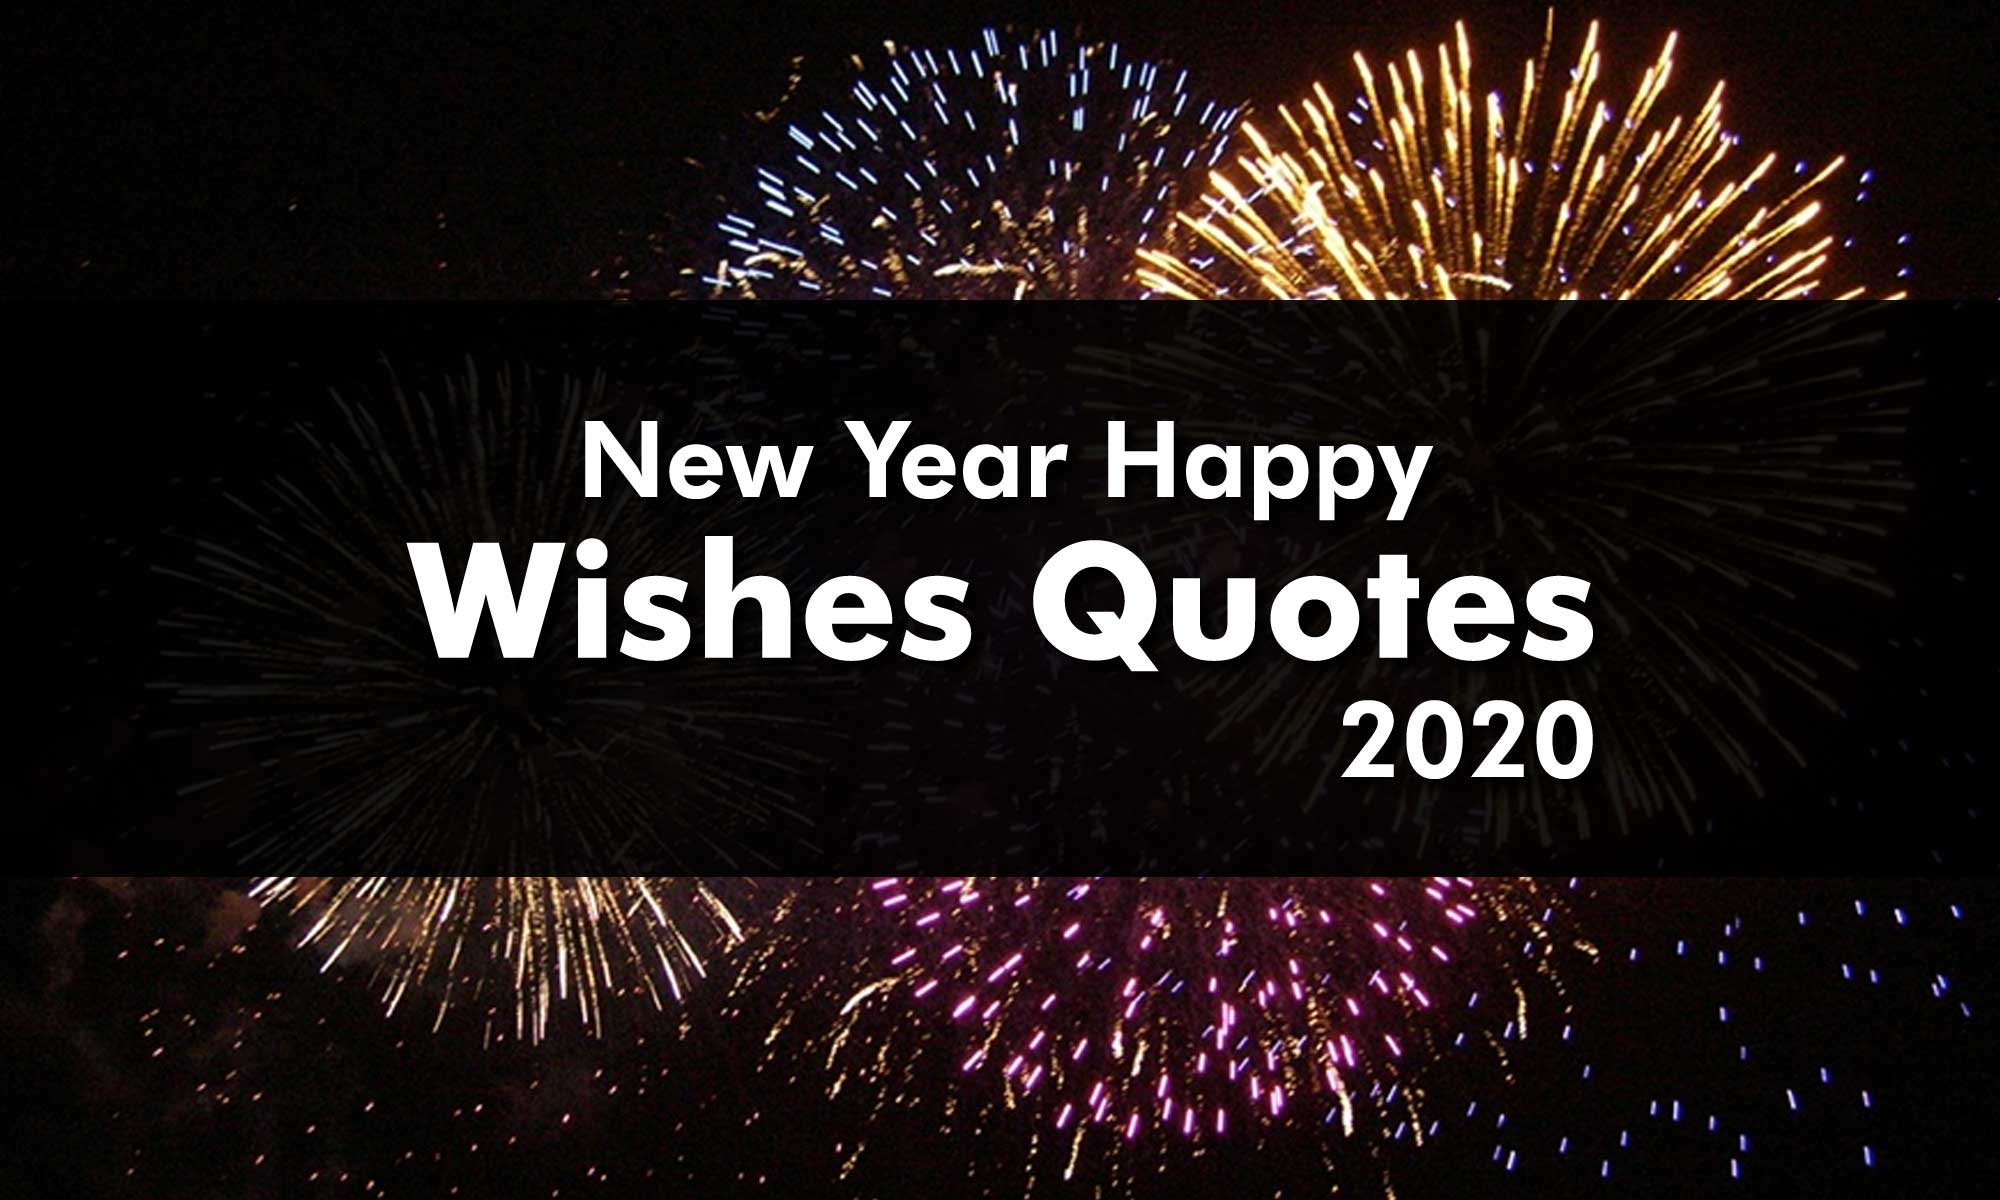 New-Year-Happy-Wishes-Quotes-2020